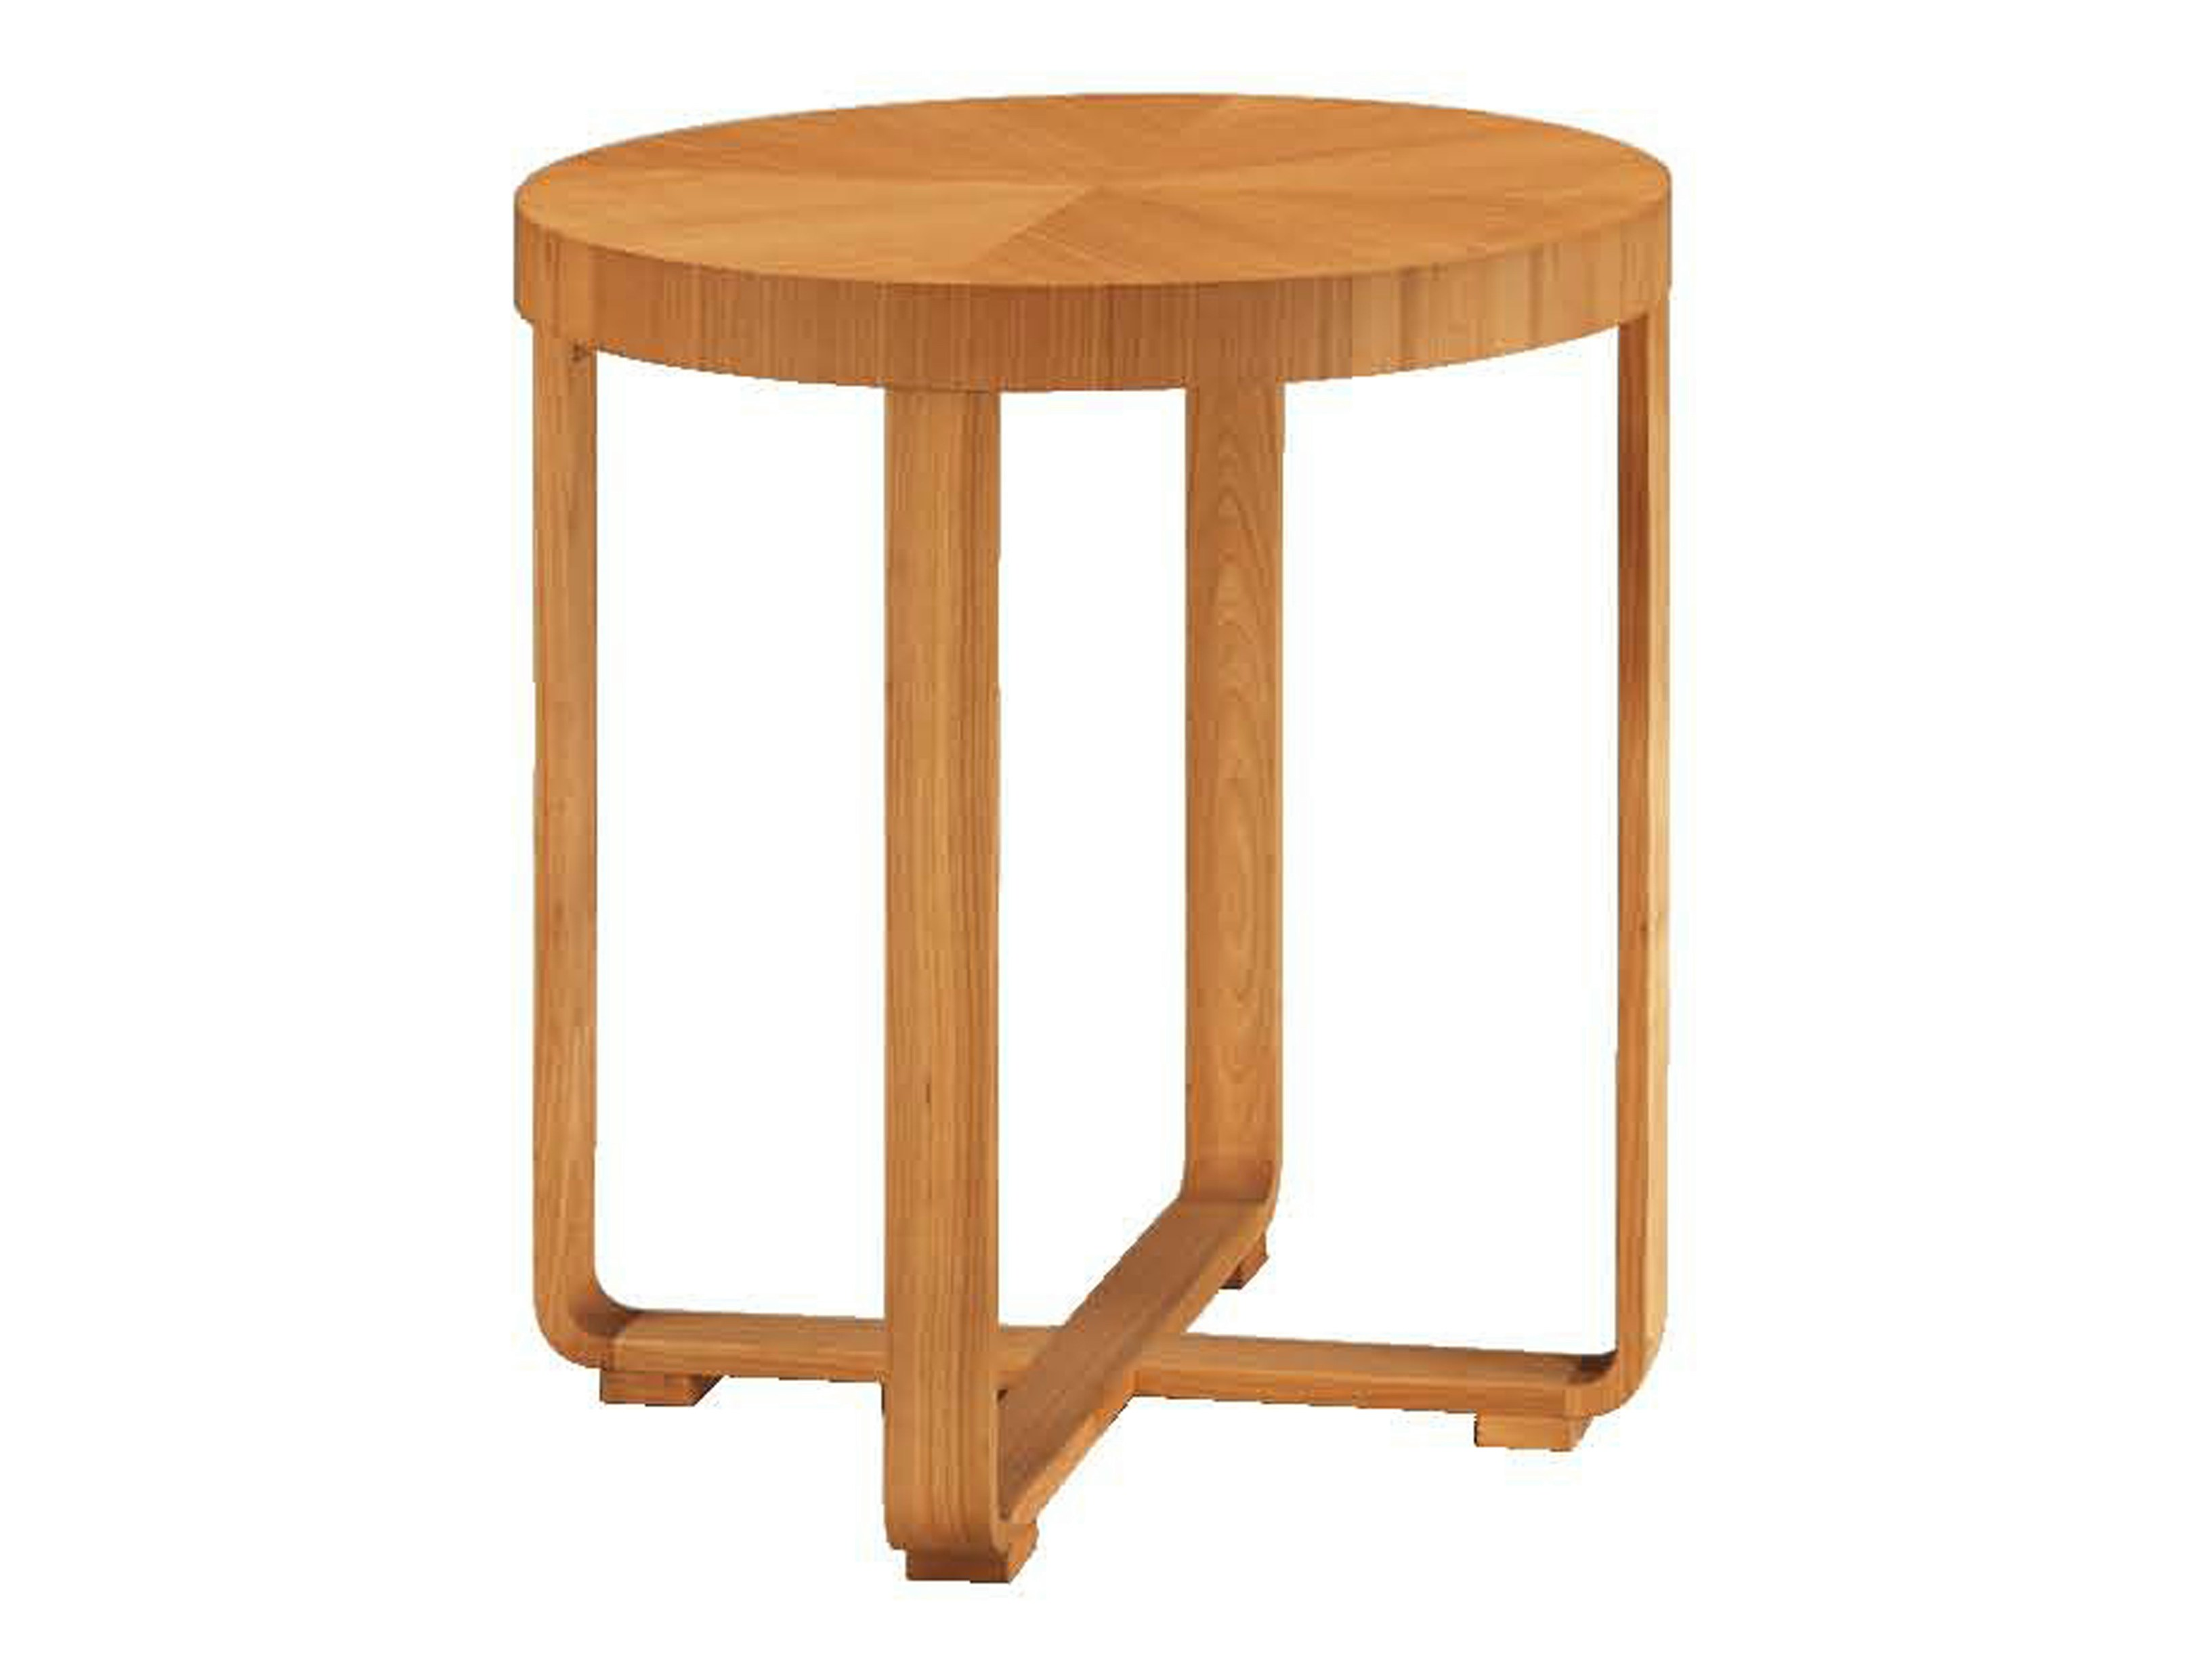 Remo High Side Table By Morelato Design Centro Ricerche Maam. Can You Paint Over Kitchen Cabinets. Best Benjamin Moore White For Kitchen Cabinets. Kitchen Cabinet Drawer Replacement. Kitchen Cabinet Installers. Kitchen Led Under Cabinet Lighting. Kitchen Cabinet Corner Drawers. Kitchen Cabinets And Stones Limited. Adjust Kitchen Cabinet Doors